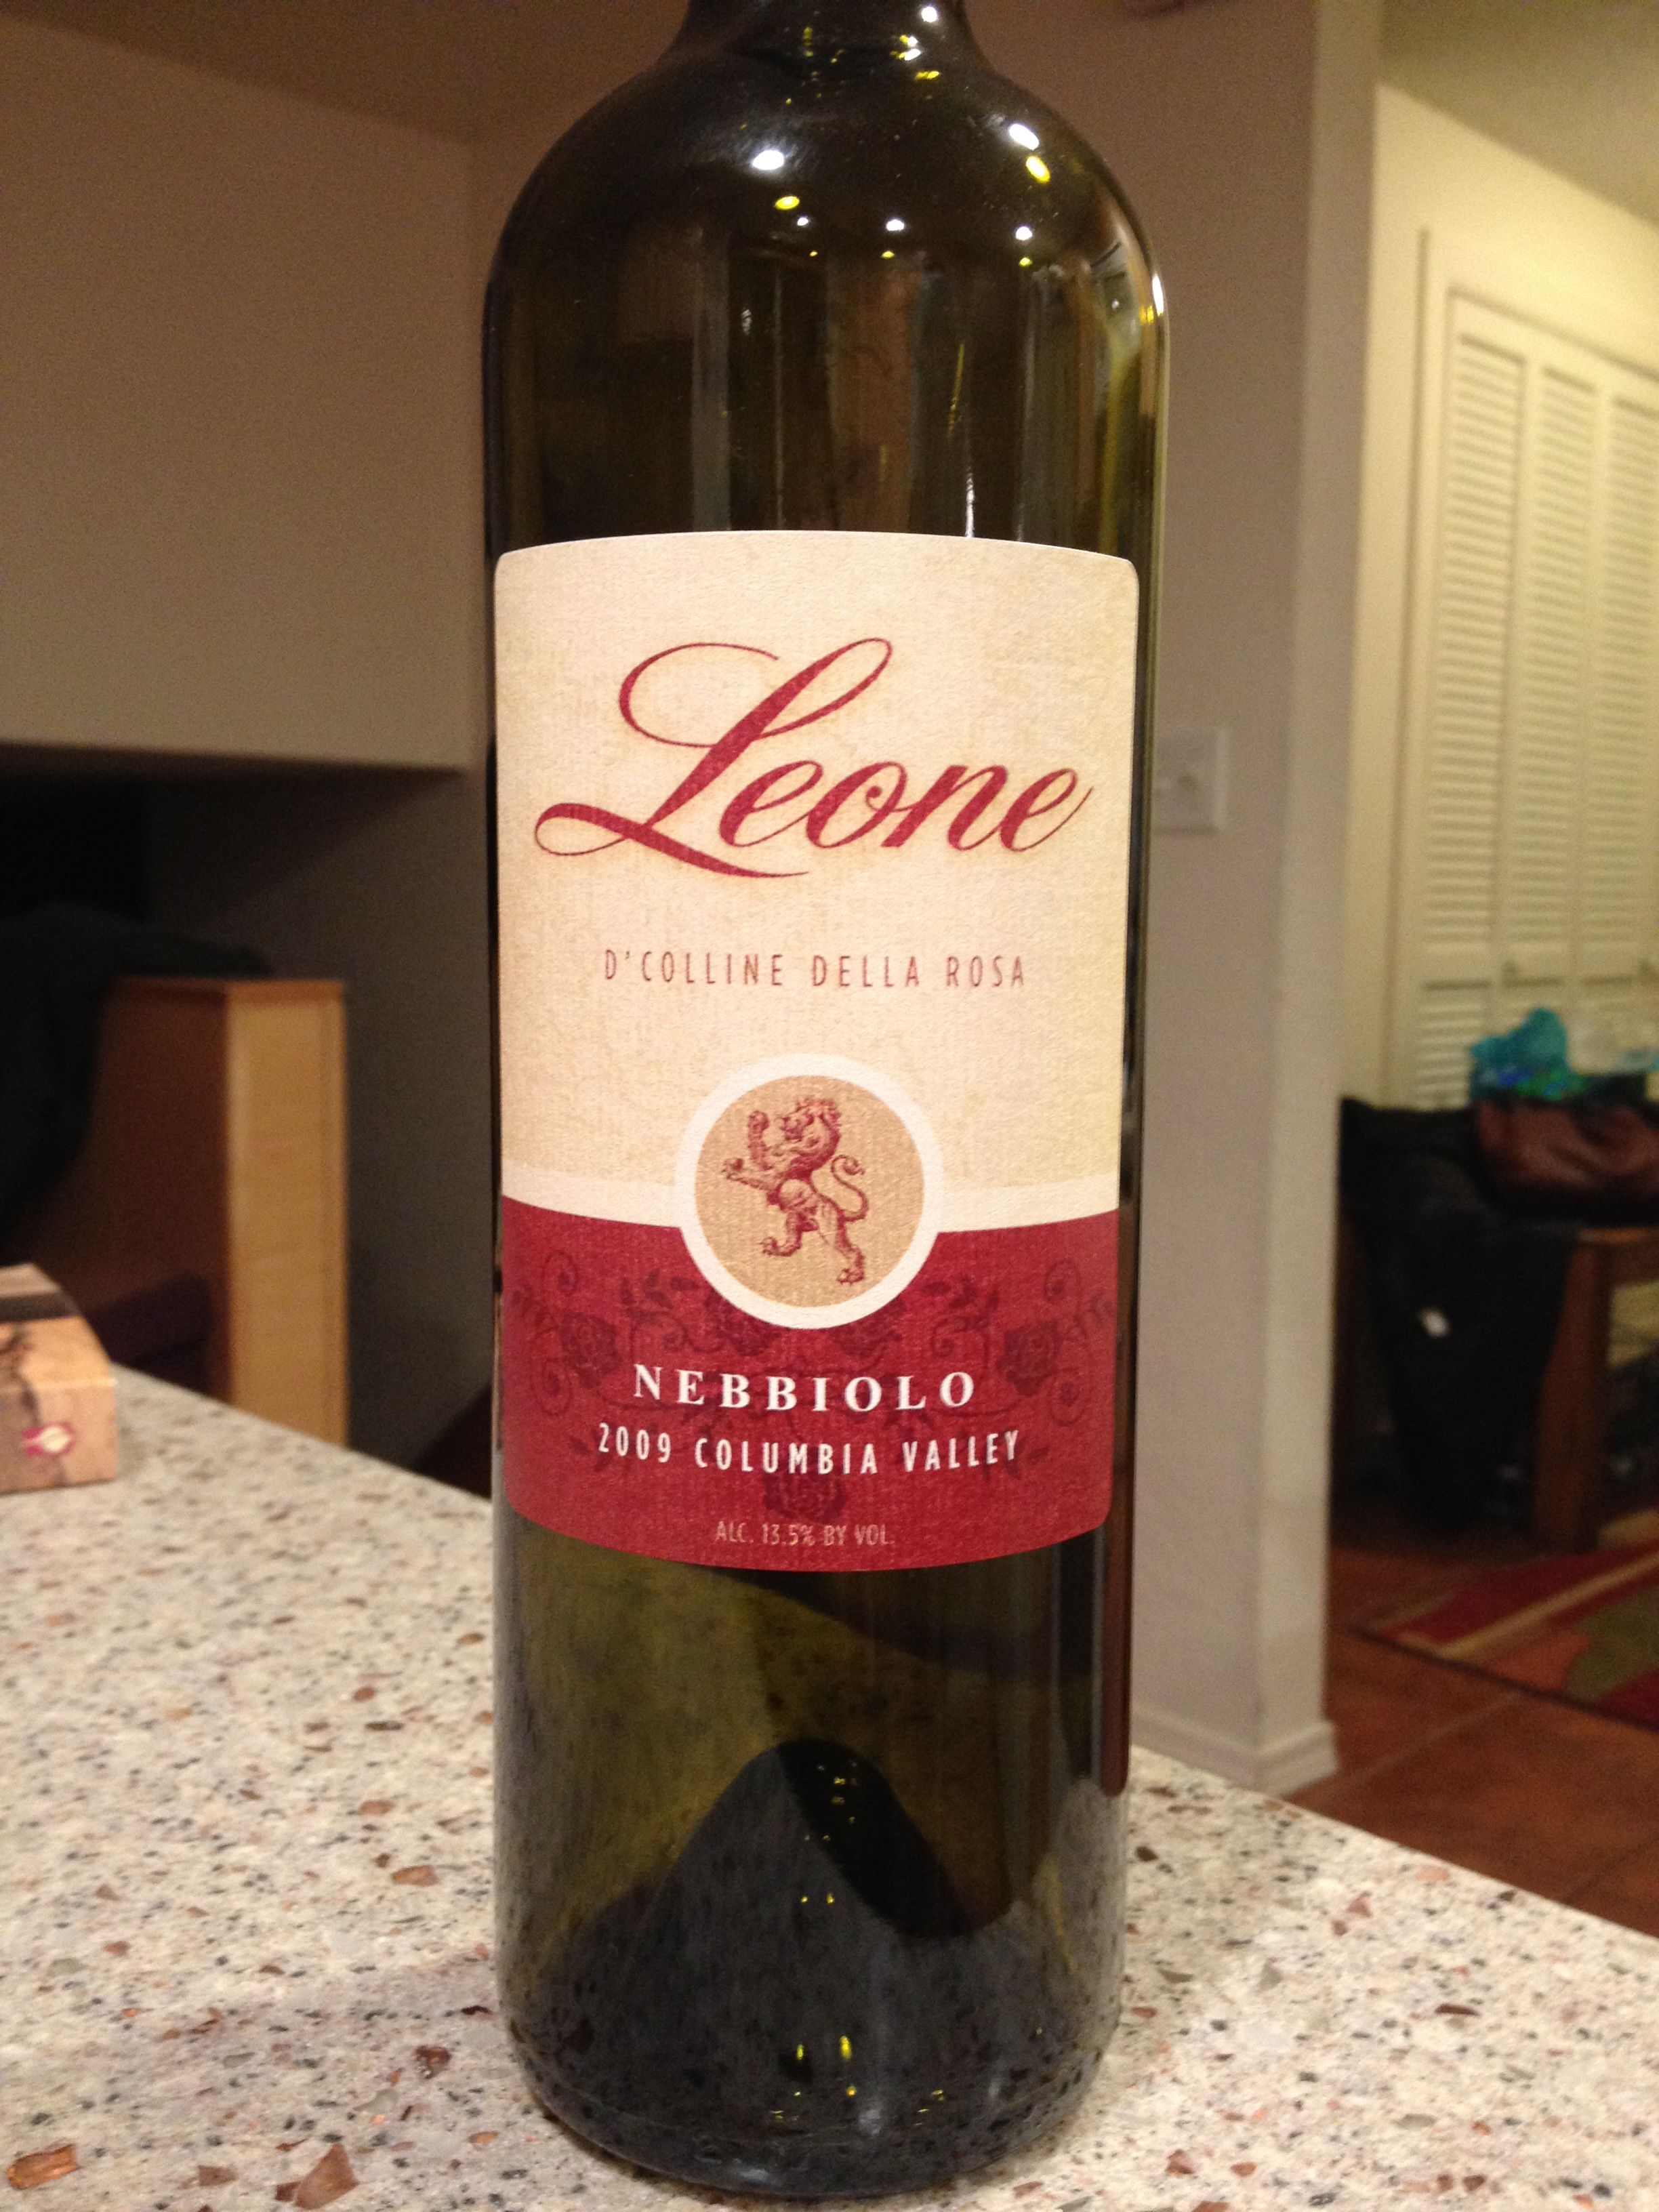 2009 Leone Nebbiolo Columbia Valley Light Garnet In Color With Notes Of Tar Violets Roses And Cherry On The Nose Rather Light I Wine Wine Cooler Tannin